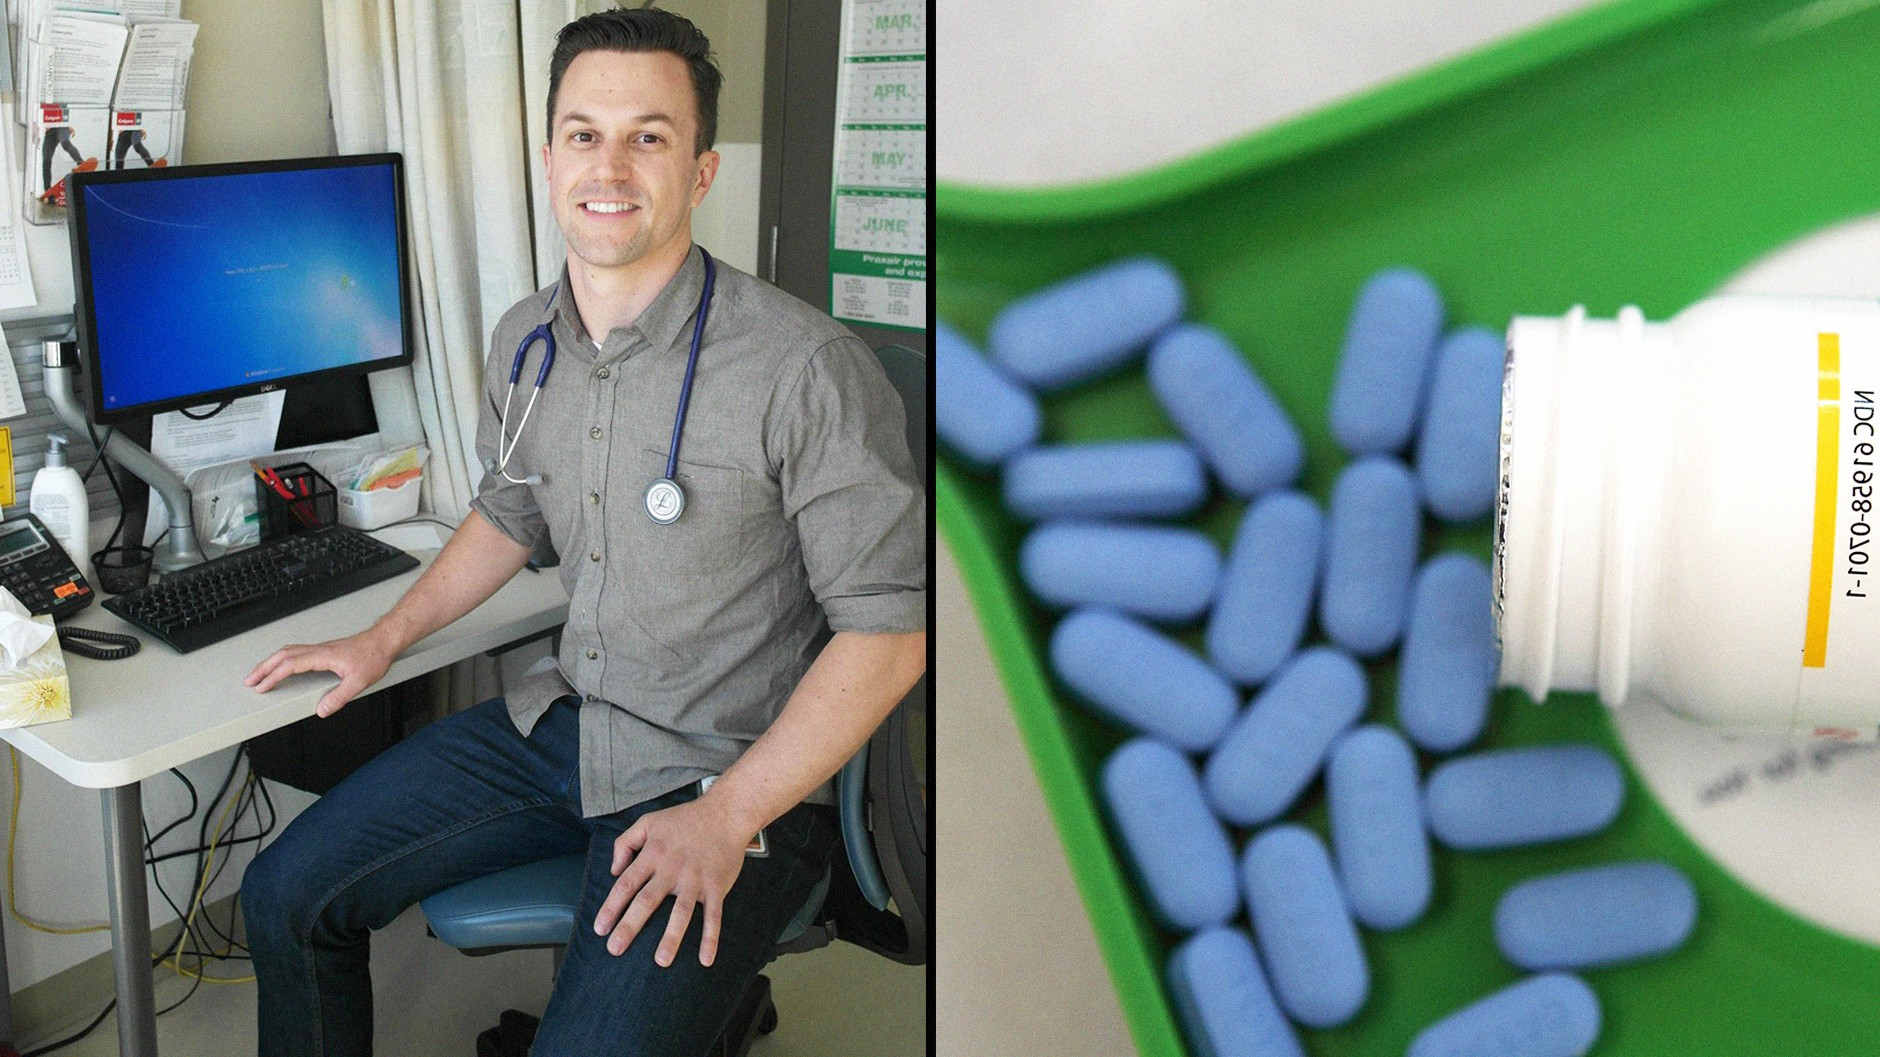 Meet the Man Helping Patients Bring Cheap HIV-Preventing Drugs to Canada